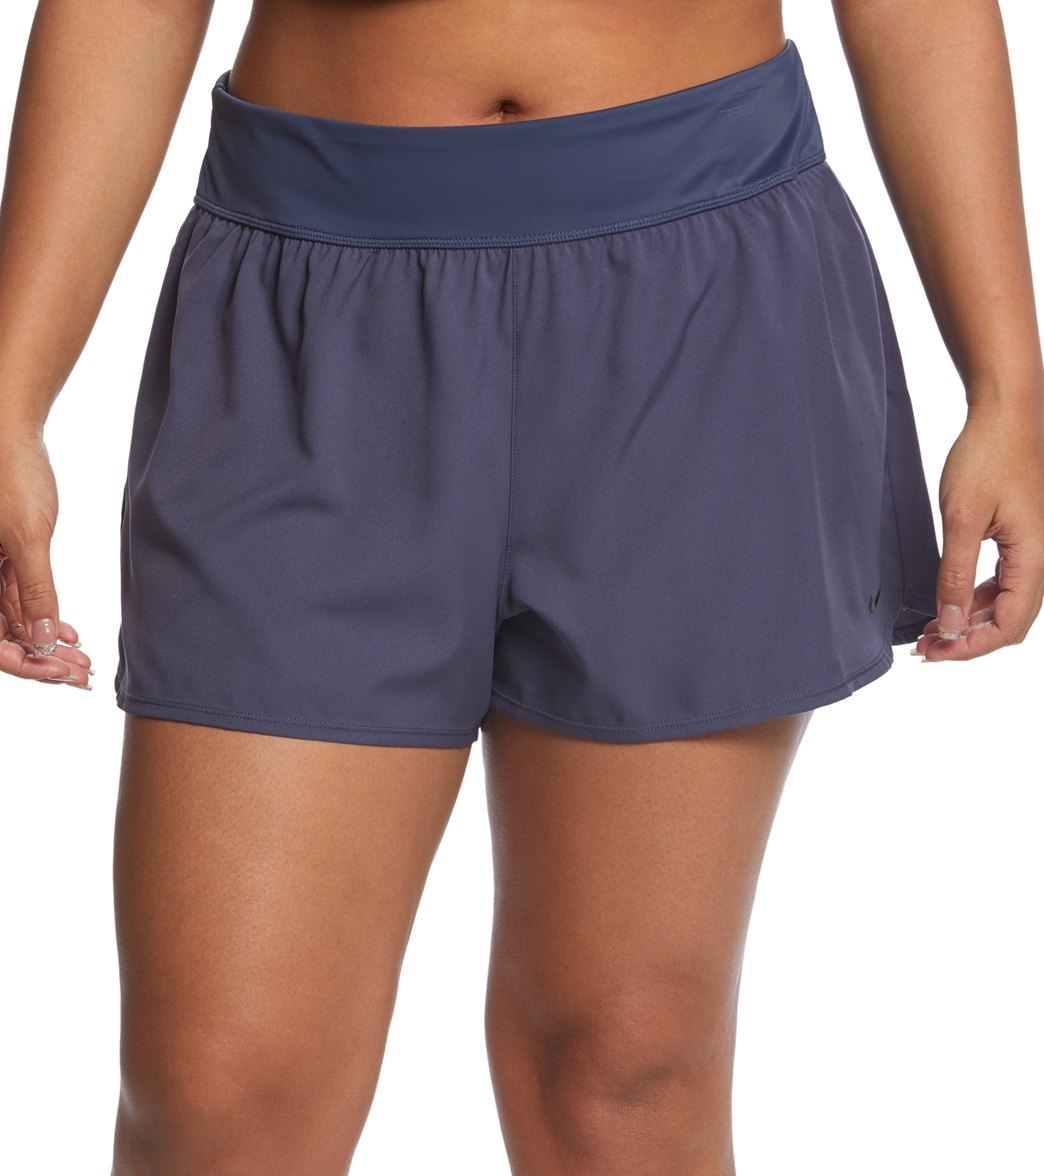 ab3b1fff53 Nike Women's Plus Size Boardshort Bottom at SwimOutlet.com - Free ...